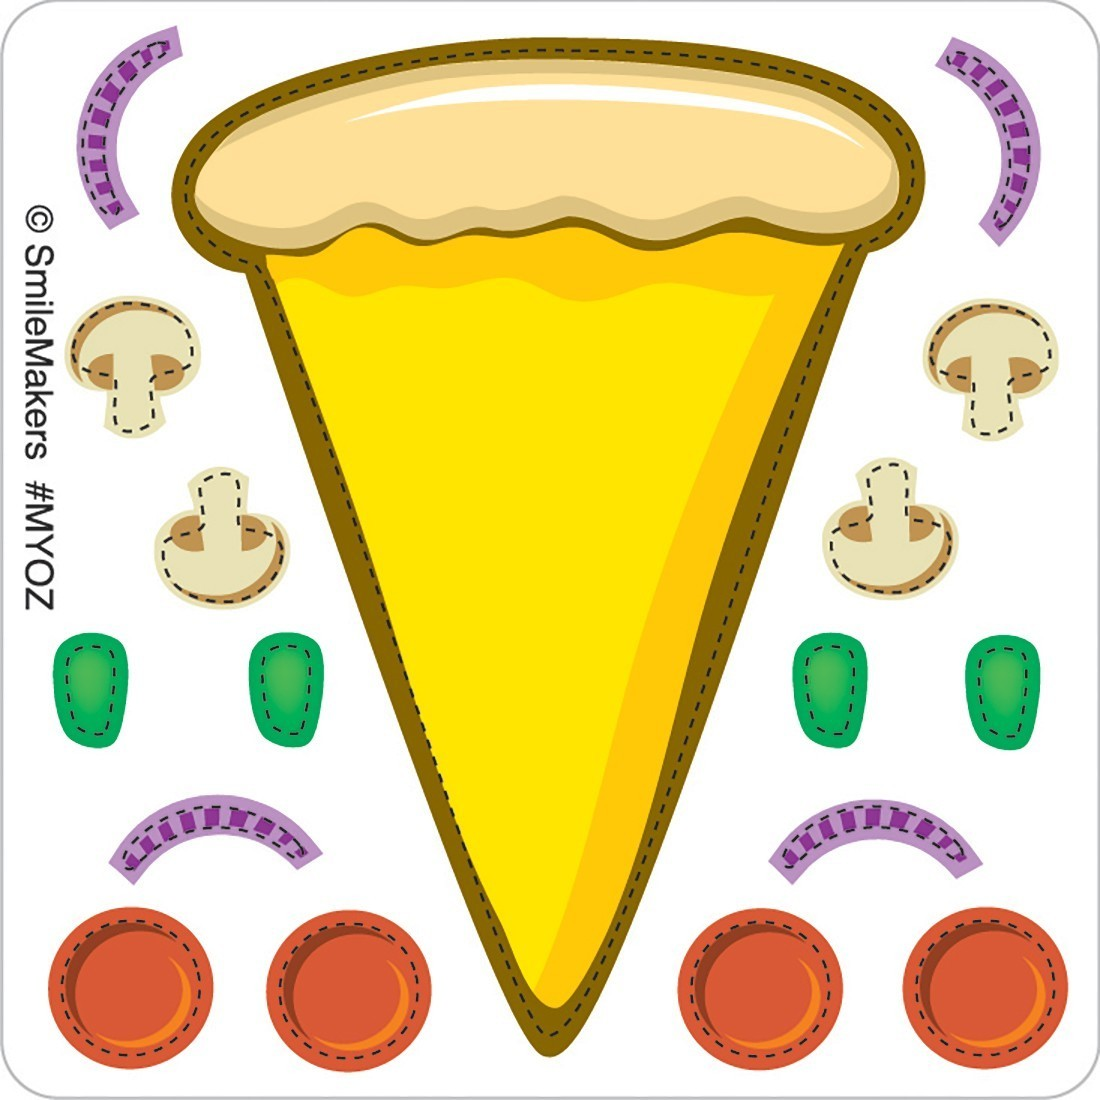 Make your own pizza stickers image slider image 0 slider image 1 slider image 2